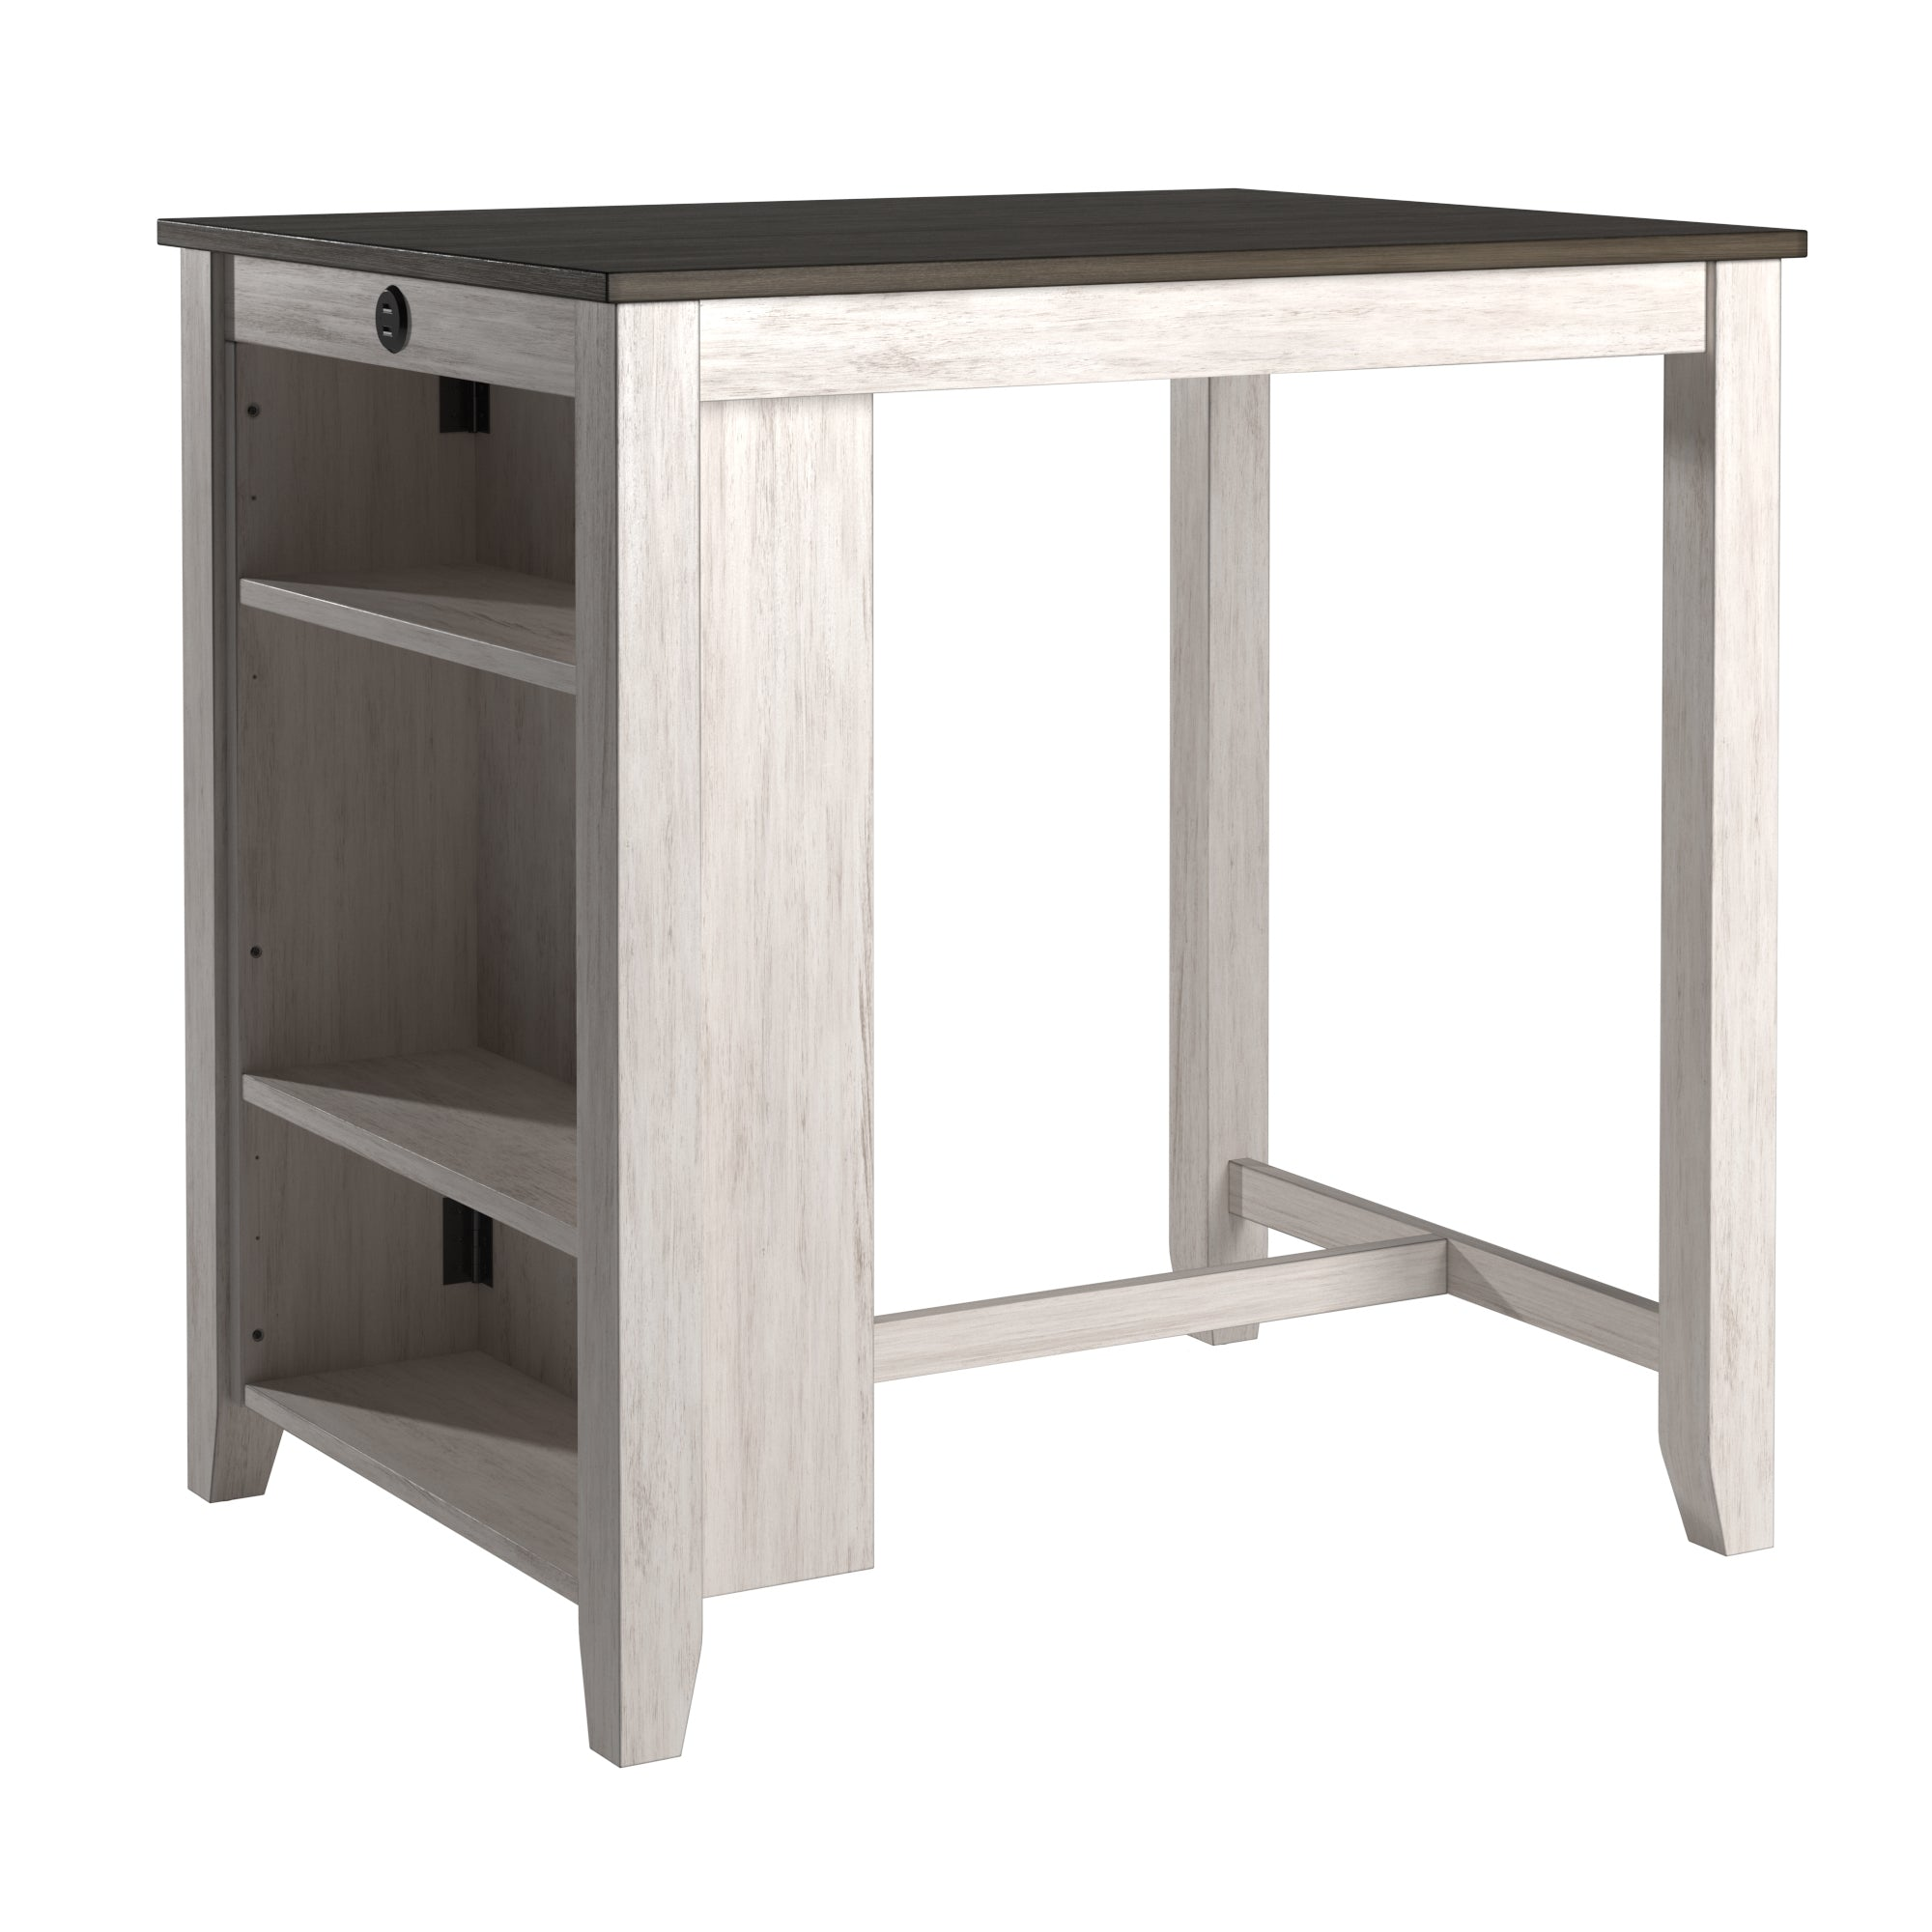 Wood Counter Height Dining Table with Charging Station - Dark Cherry Top and Two-Tone Grey & White Base Finish